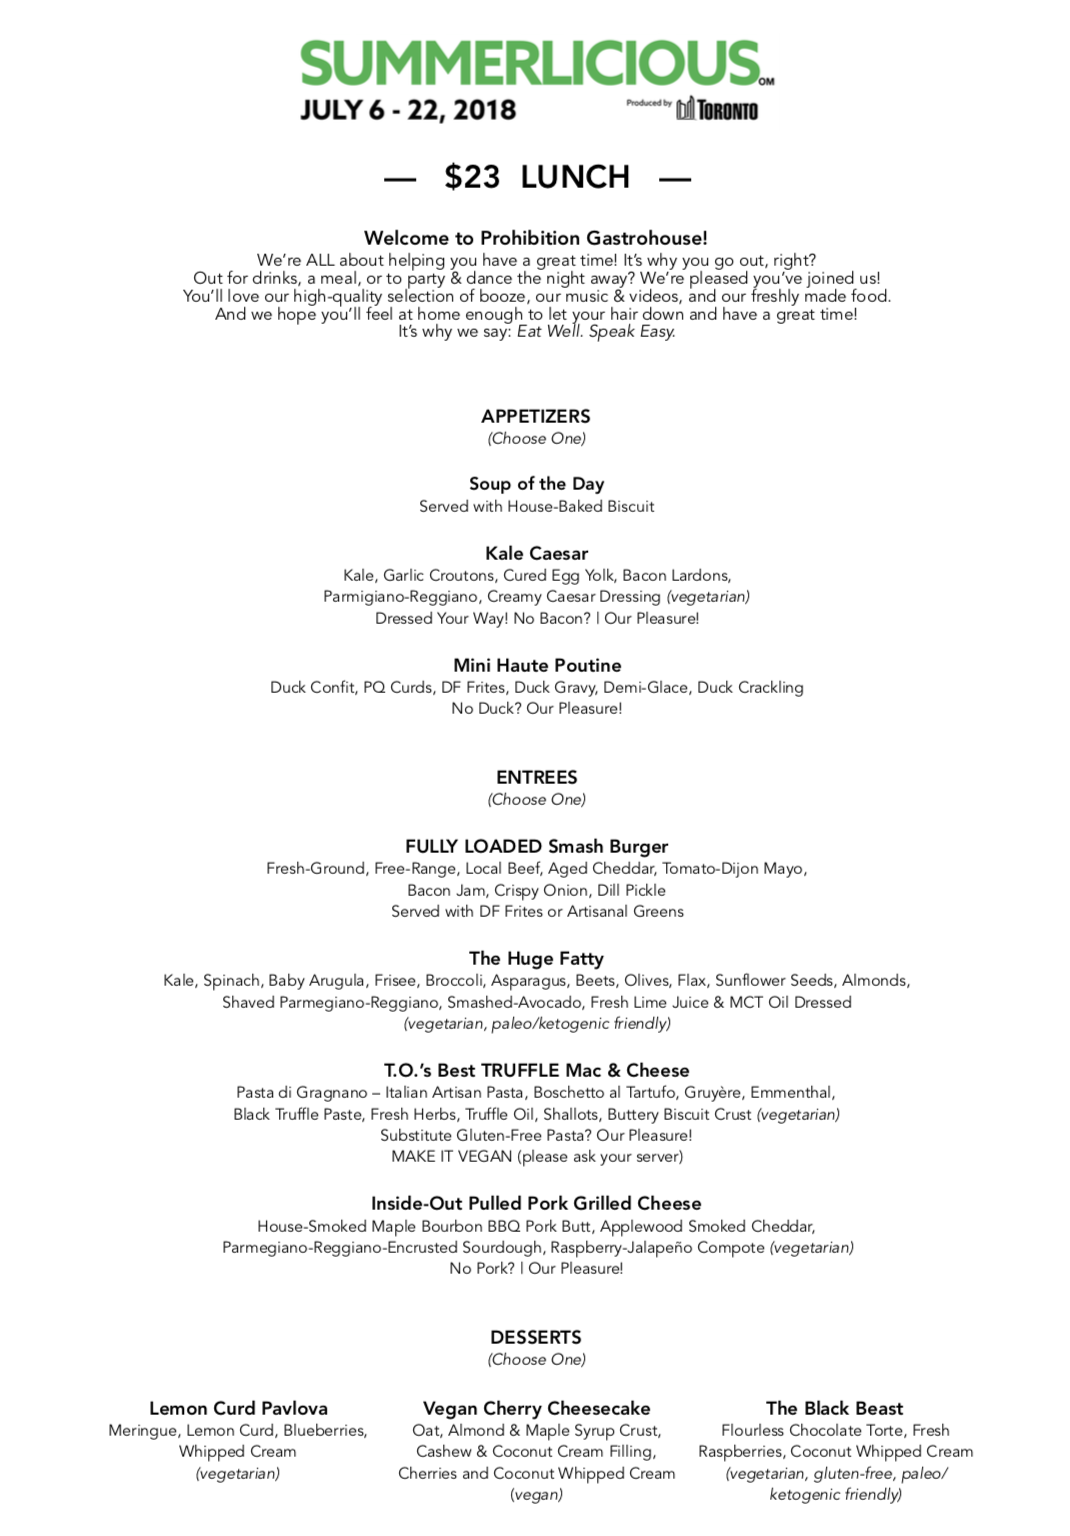 Summerlicious 2018 - Lunch Prohibition Gastrohouse.png